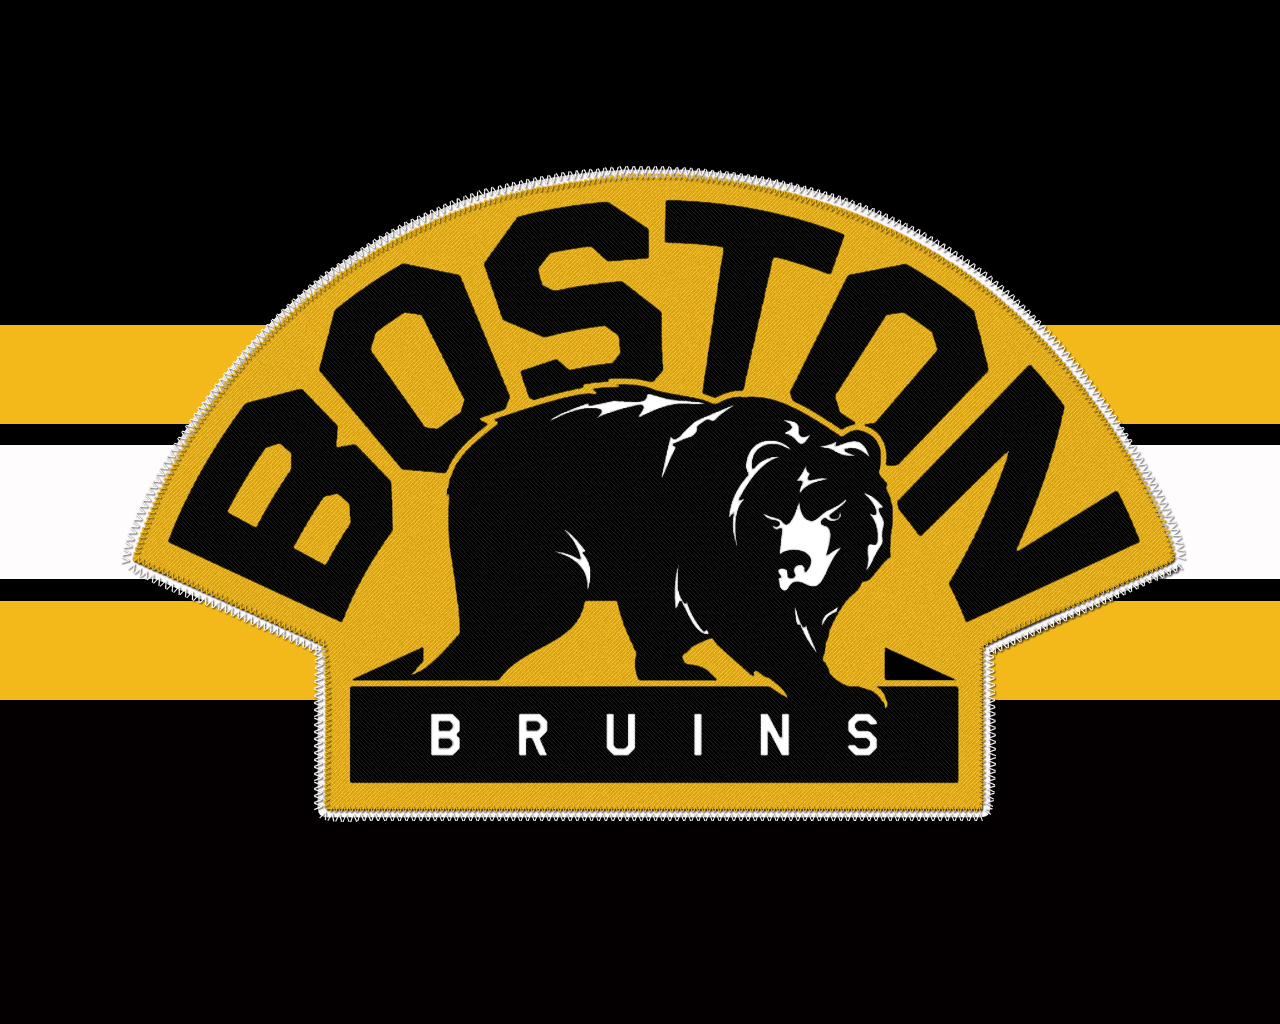 Boston Bruins: Can You Guess How NHL Teams Got Their Names?